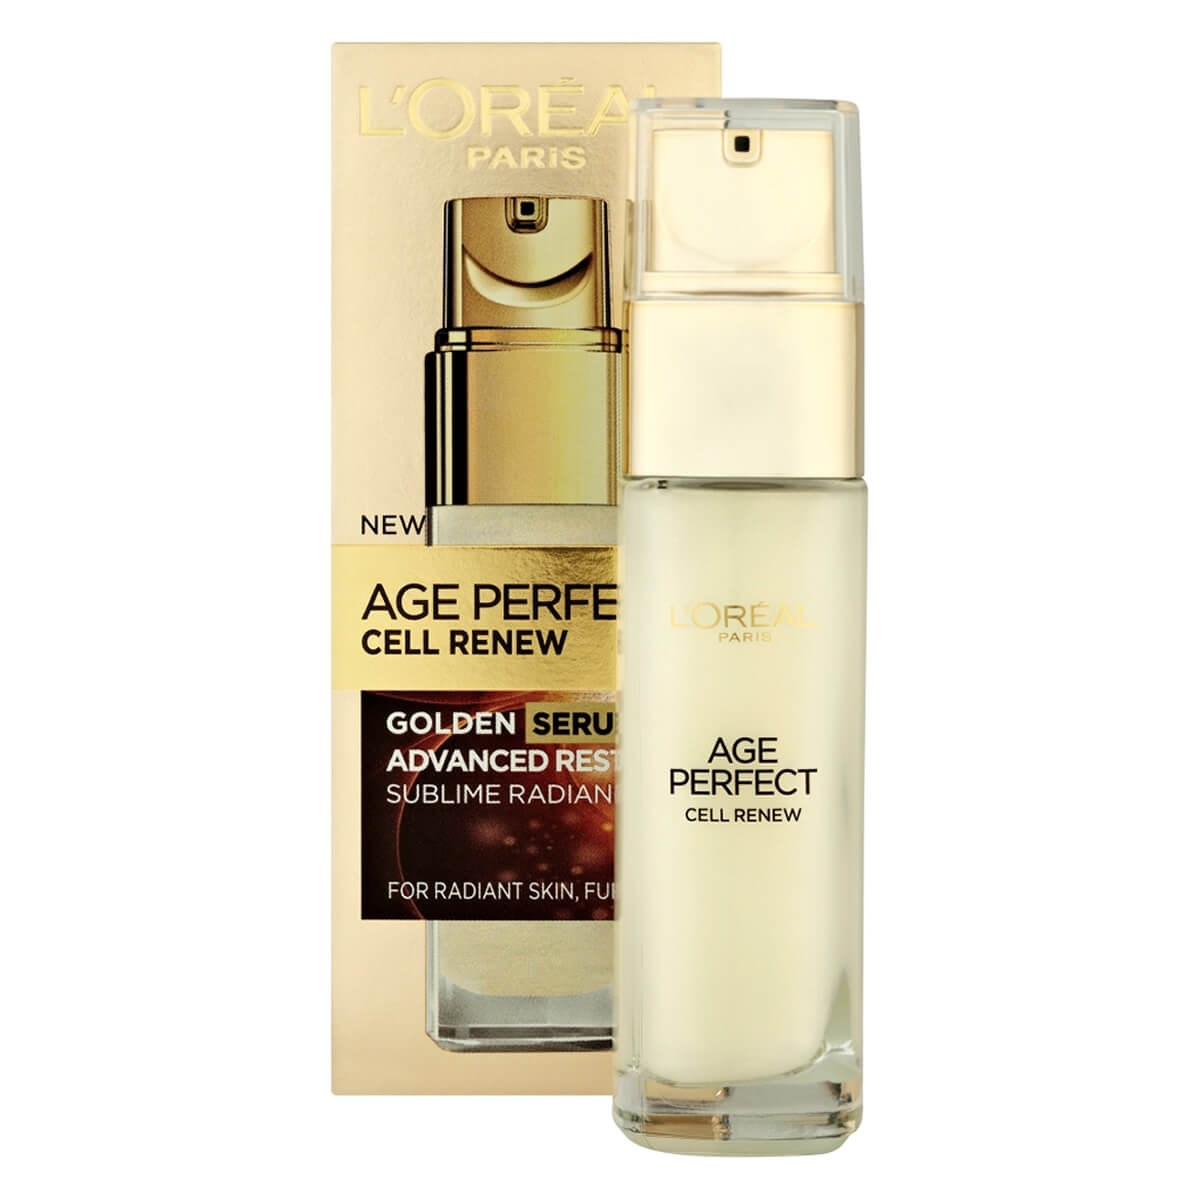 L'Oreal Paris Age Perfect Cell Renew Golden Serum Advanced Restoring